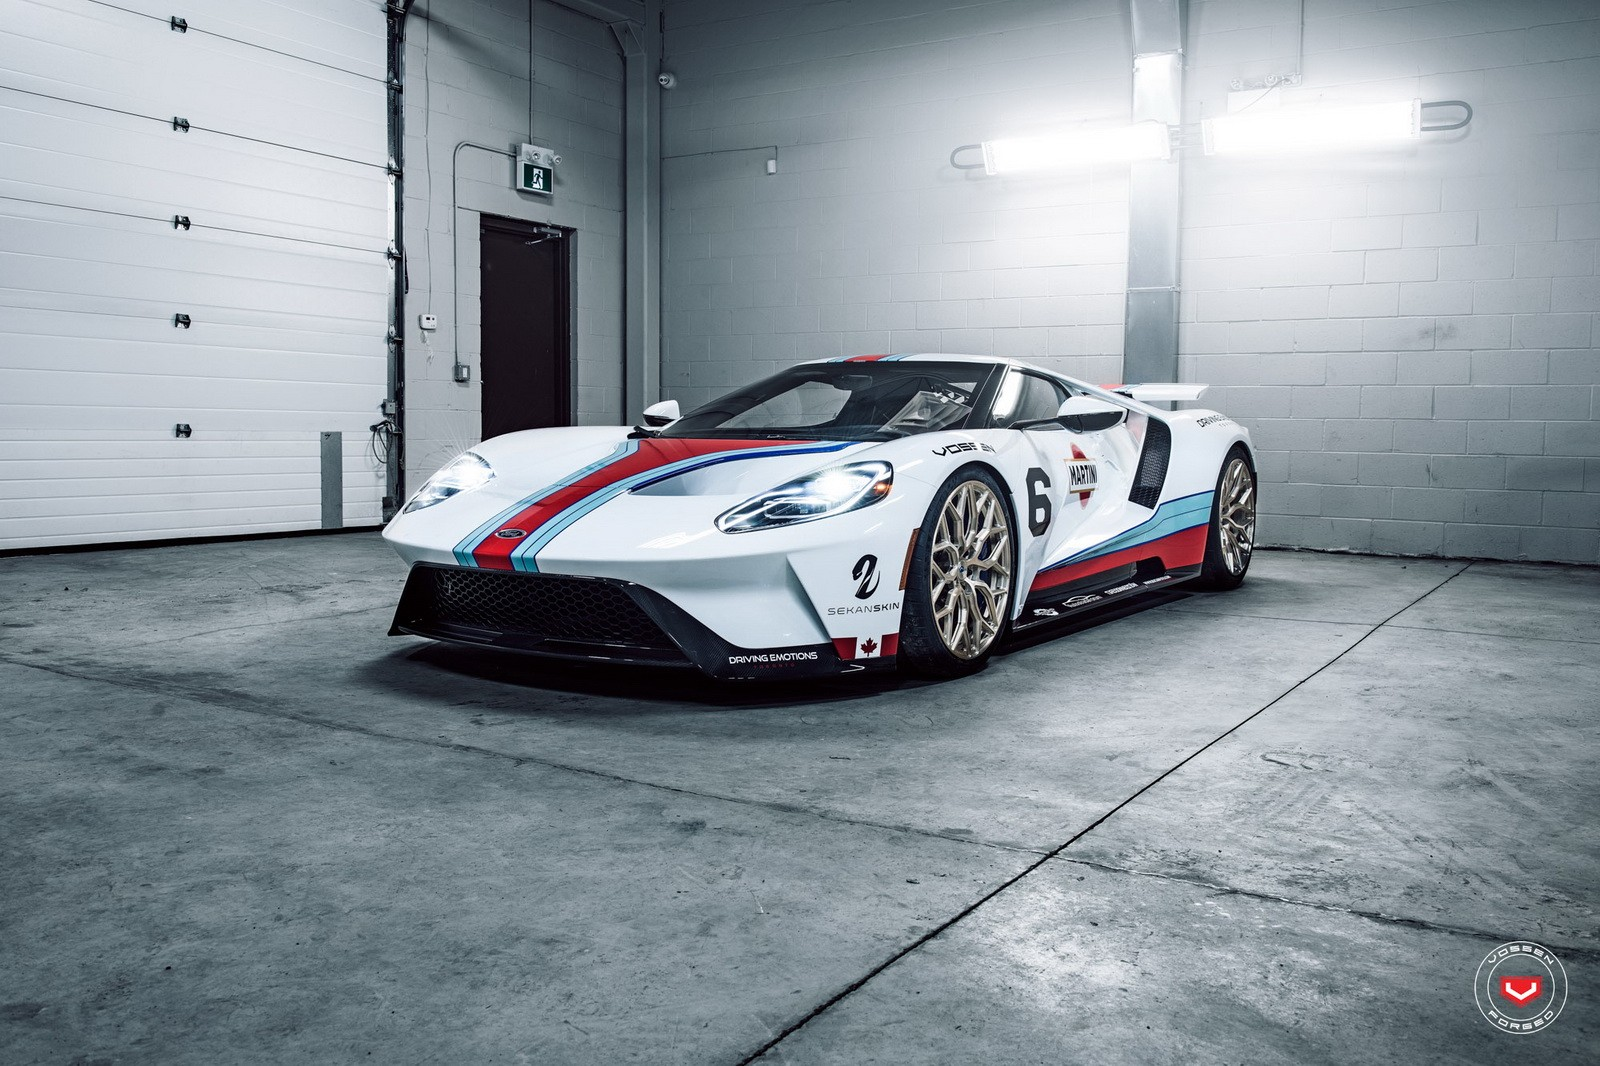 Ford Gt Gets Martini Livery And Vossen Wheels For The Cars And Coffee Look